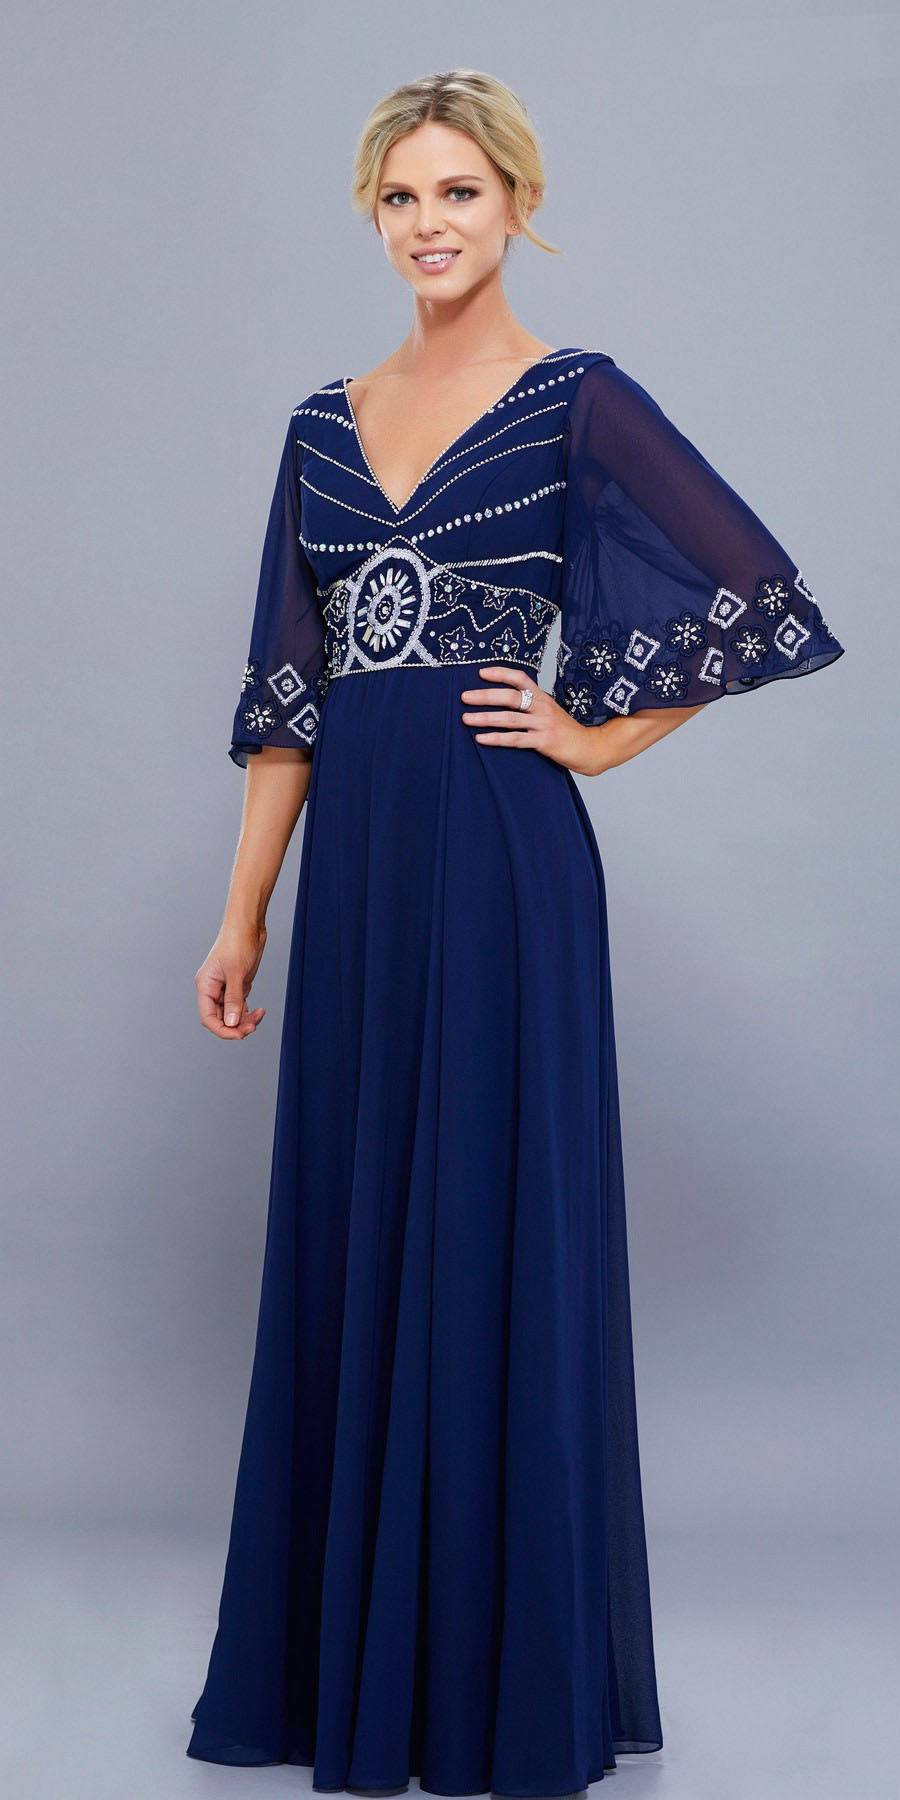 Navy Blue Empire-Waist Flutter Sleeves A-Line Floor Length Dress ...